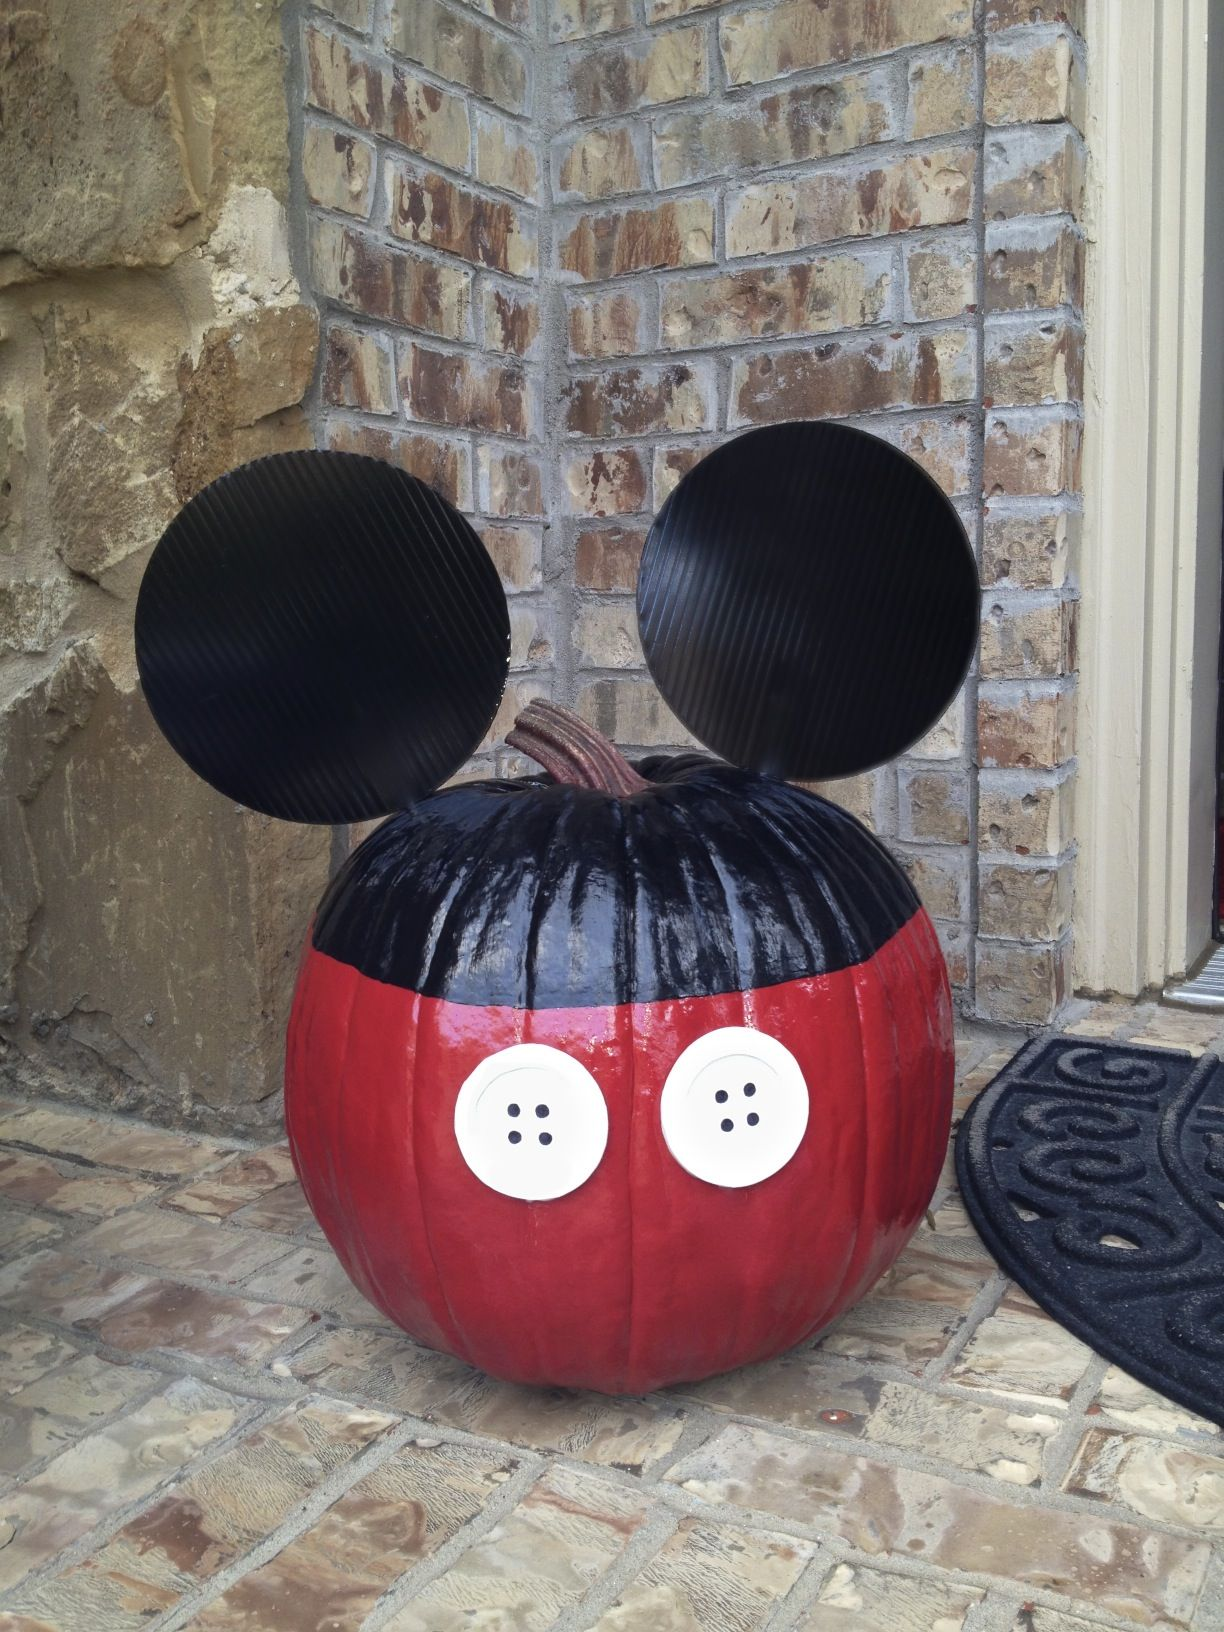 40 Awesome Pumpkin Carving Ideas for Halloween Decorating Mickey - Minnie Mouse Halloween Decorations